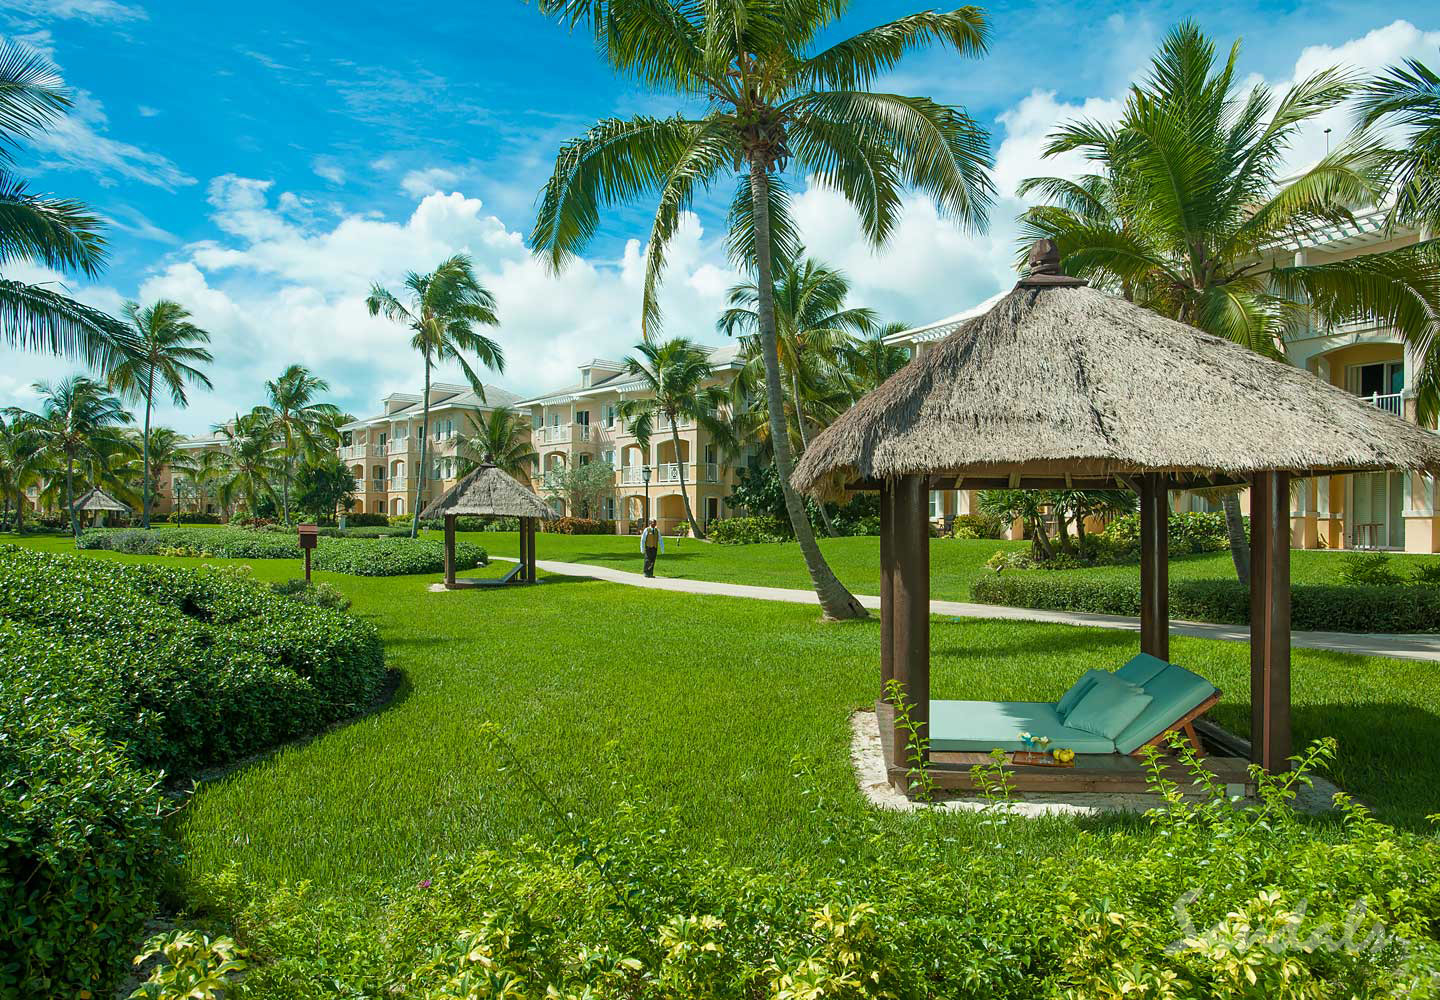 Travel Agency All-Inclusive Resort Sandals Emerald Bay 061